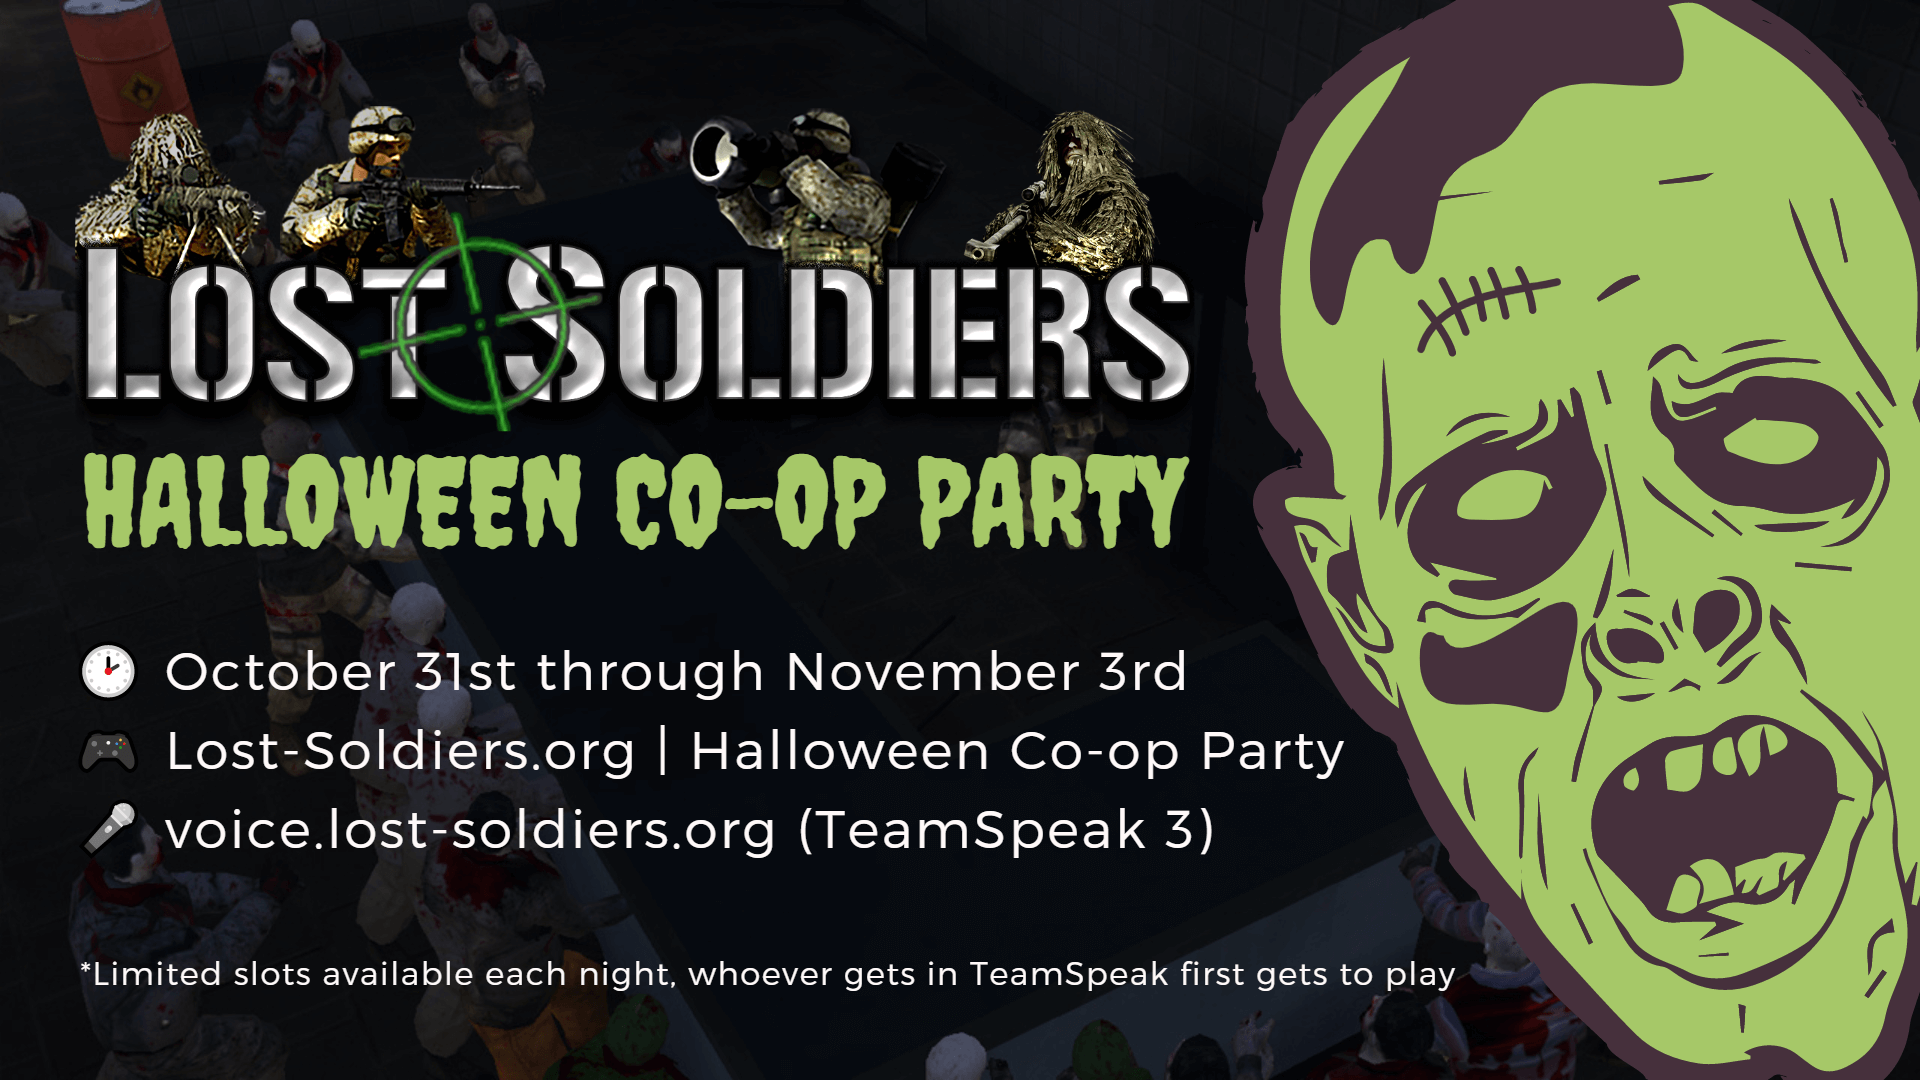 https://www.lost-soldiers.org/images/news-pics/Halloween-Co-op-Party-2019-min.png